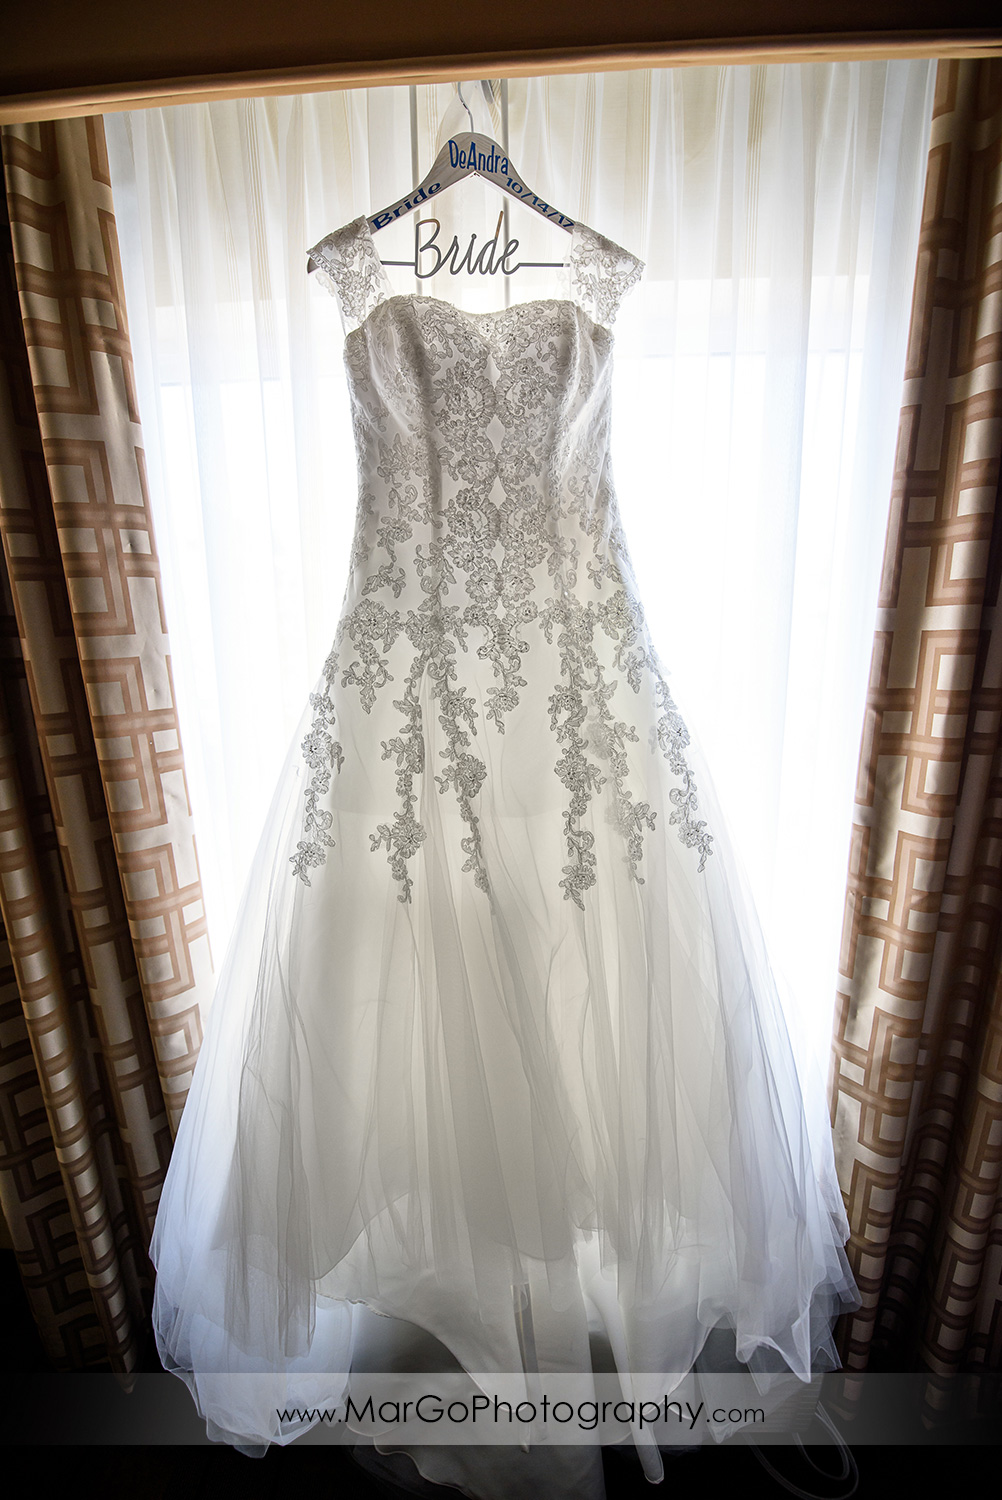 wedding dress hanging in the window at Best Western Plus Delta Inn & Suites in Oakley